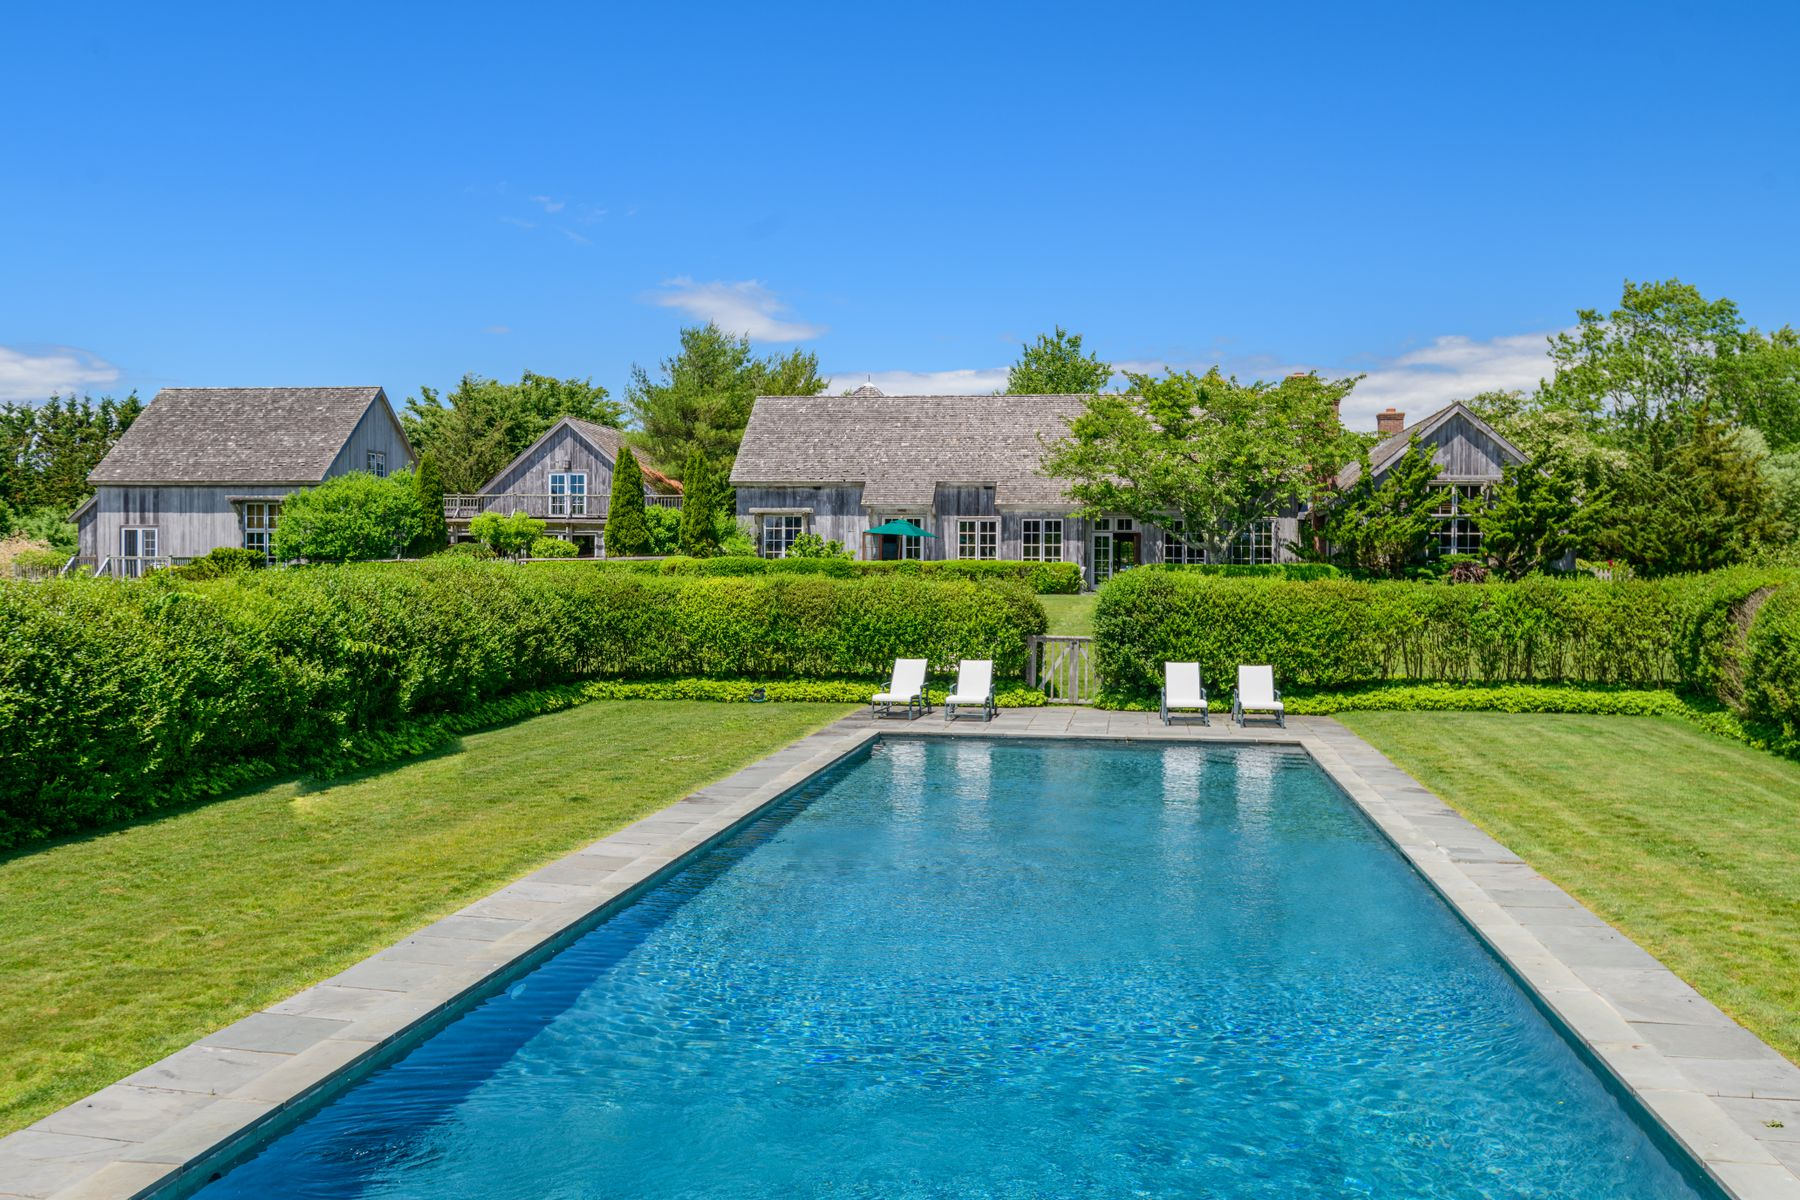 Single Family Homes for Sale at 6.60+/- Acres in Bridgehampton 81 Day Lily Lane Bridgehampton, New York 11932 United States